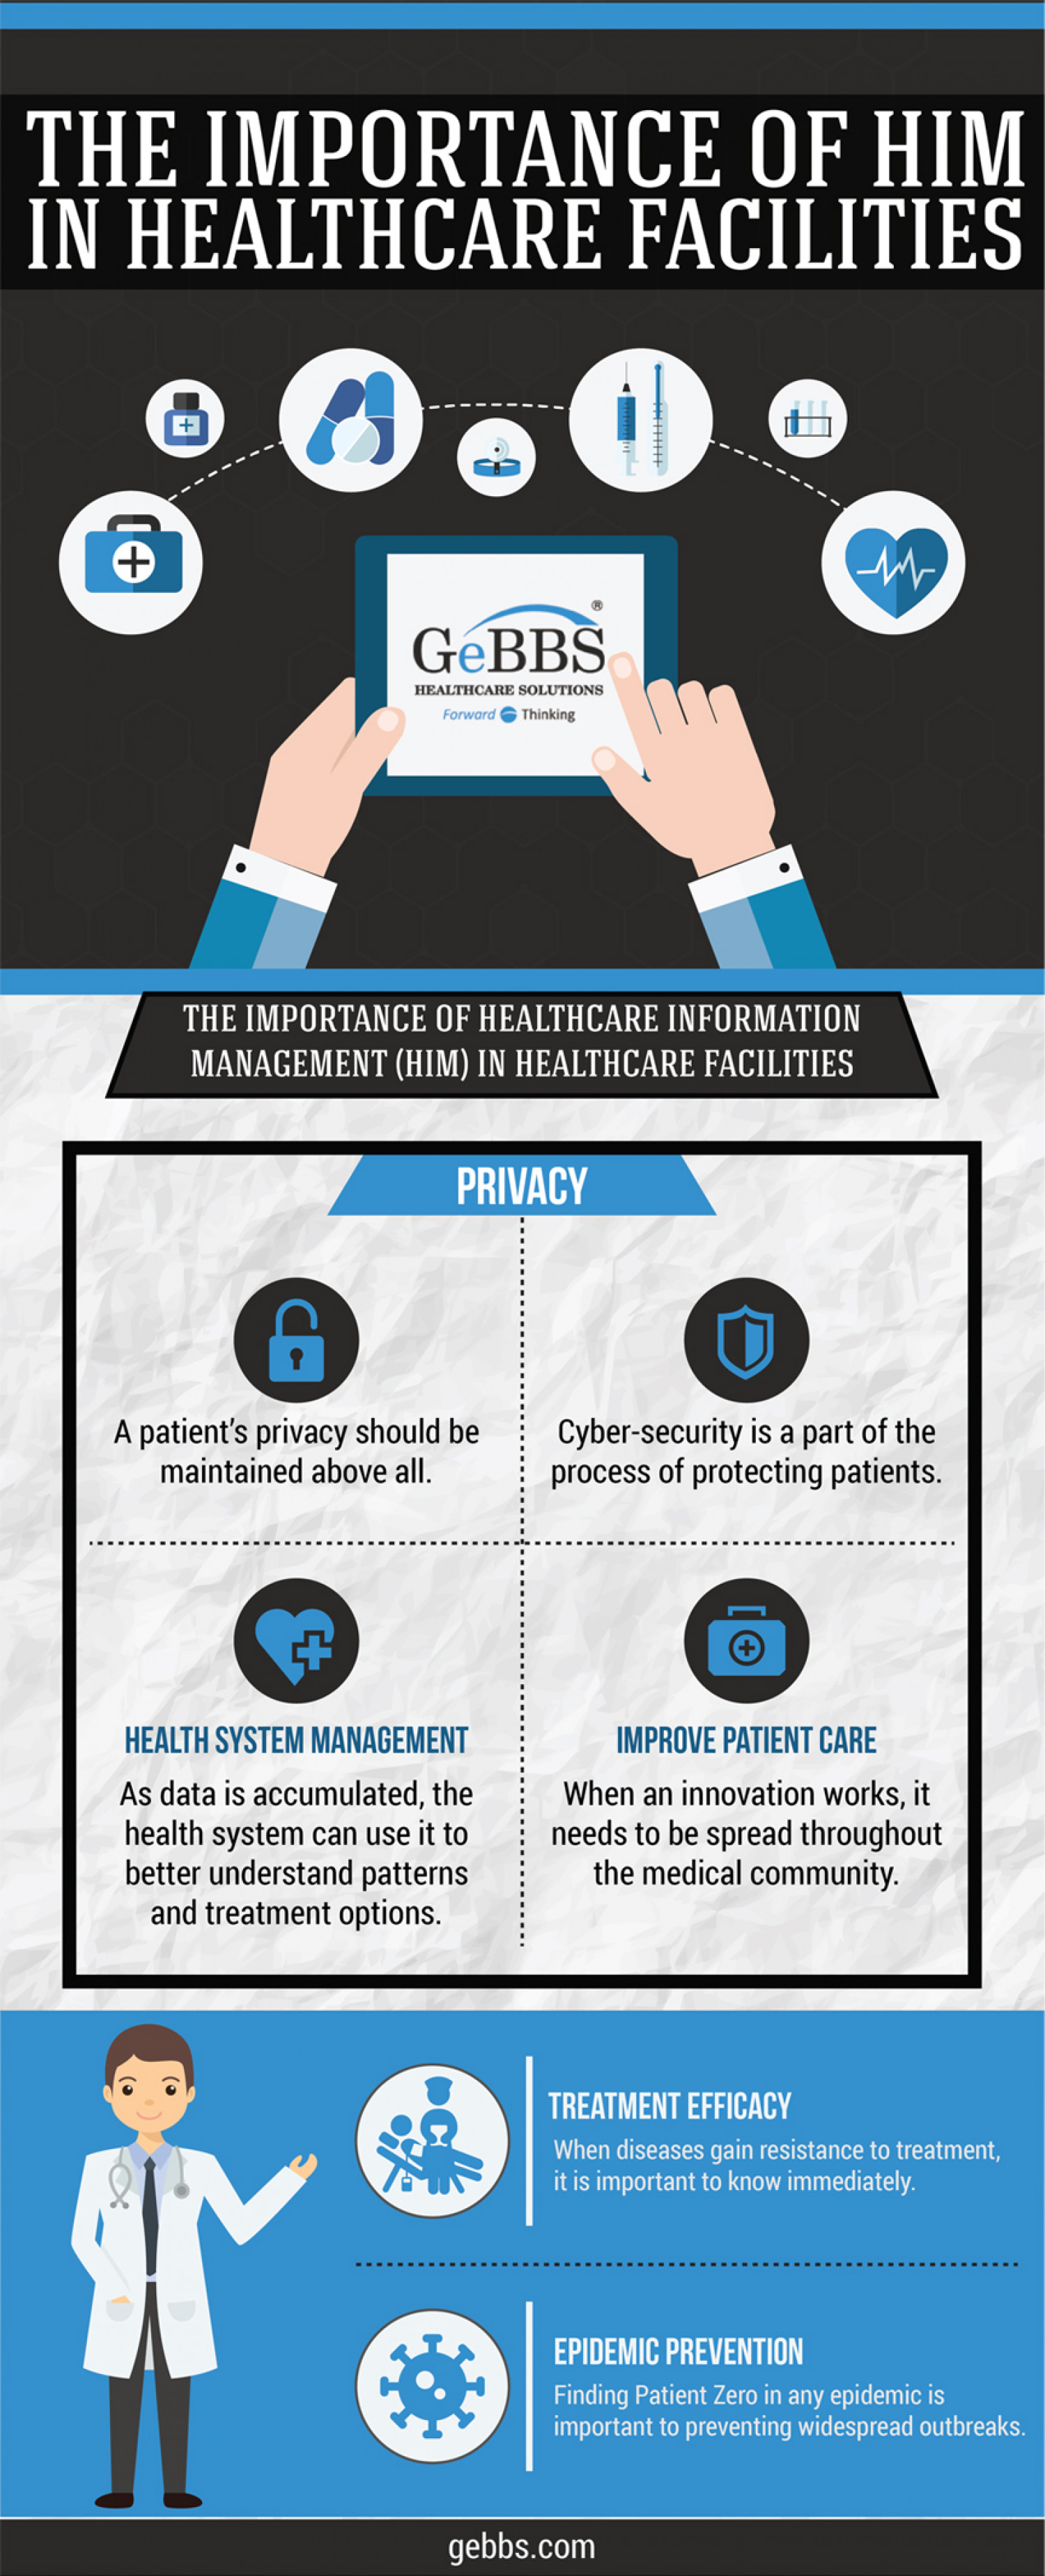 The Importance of HIM in Healthcare Facilities Infographic